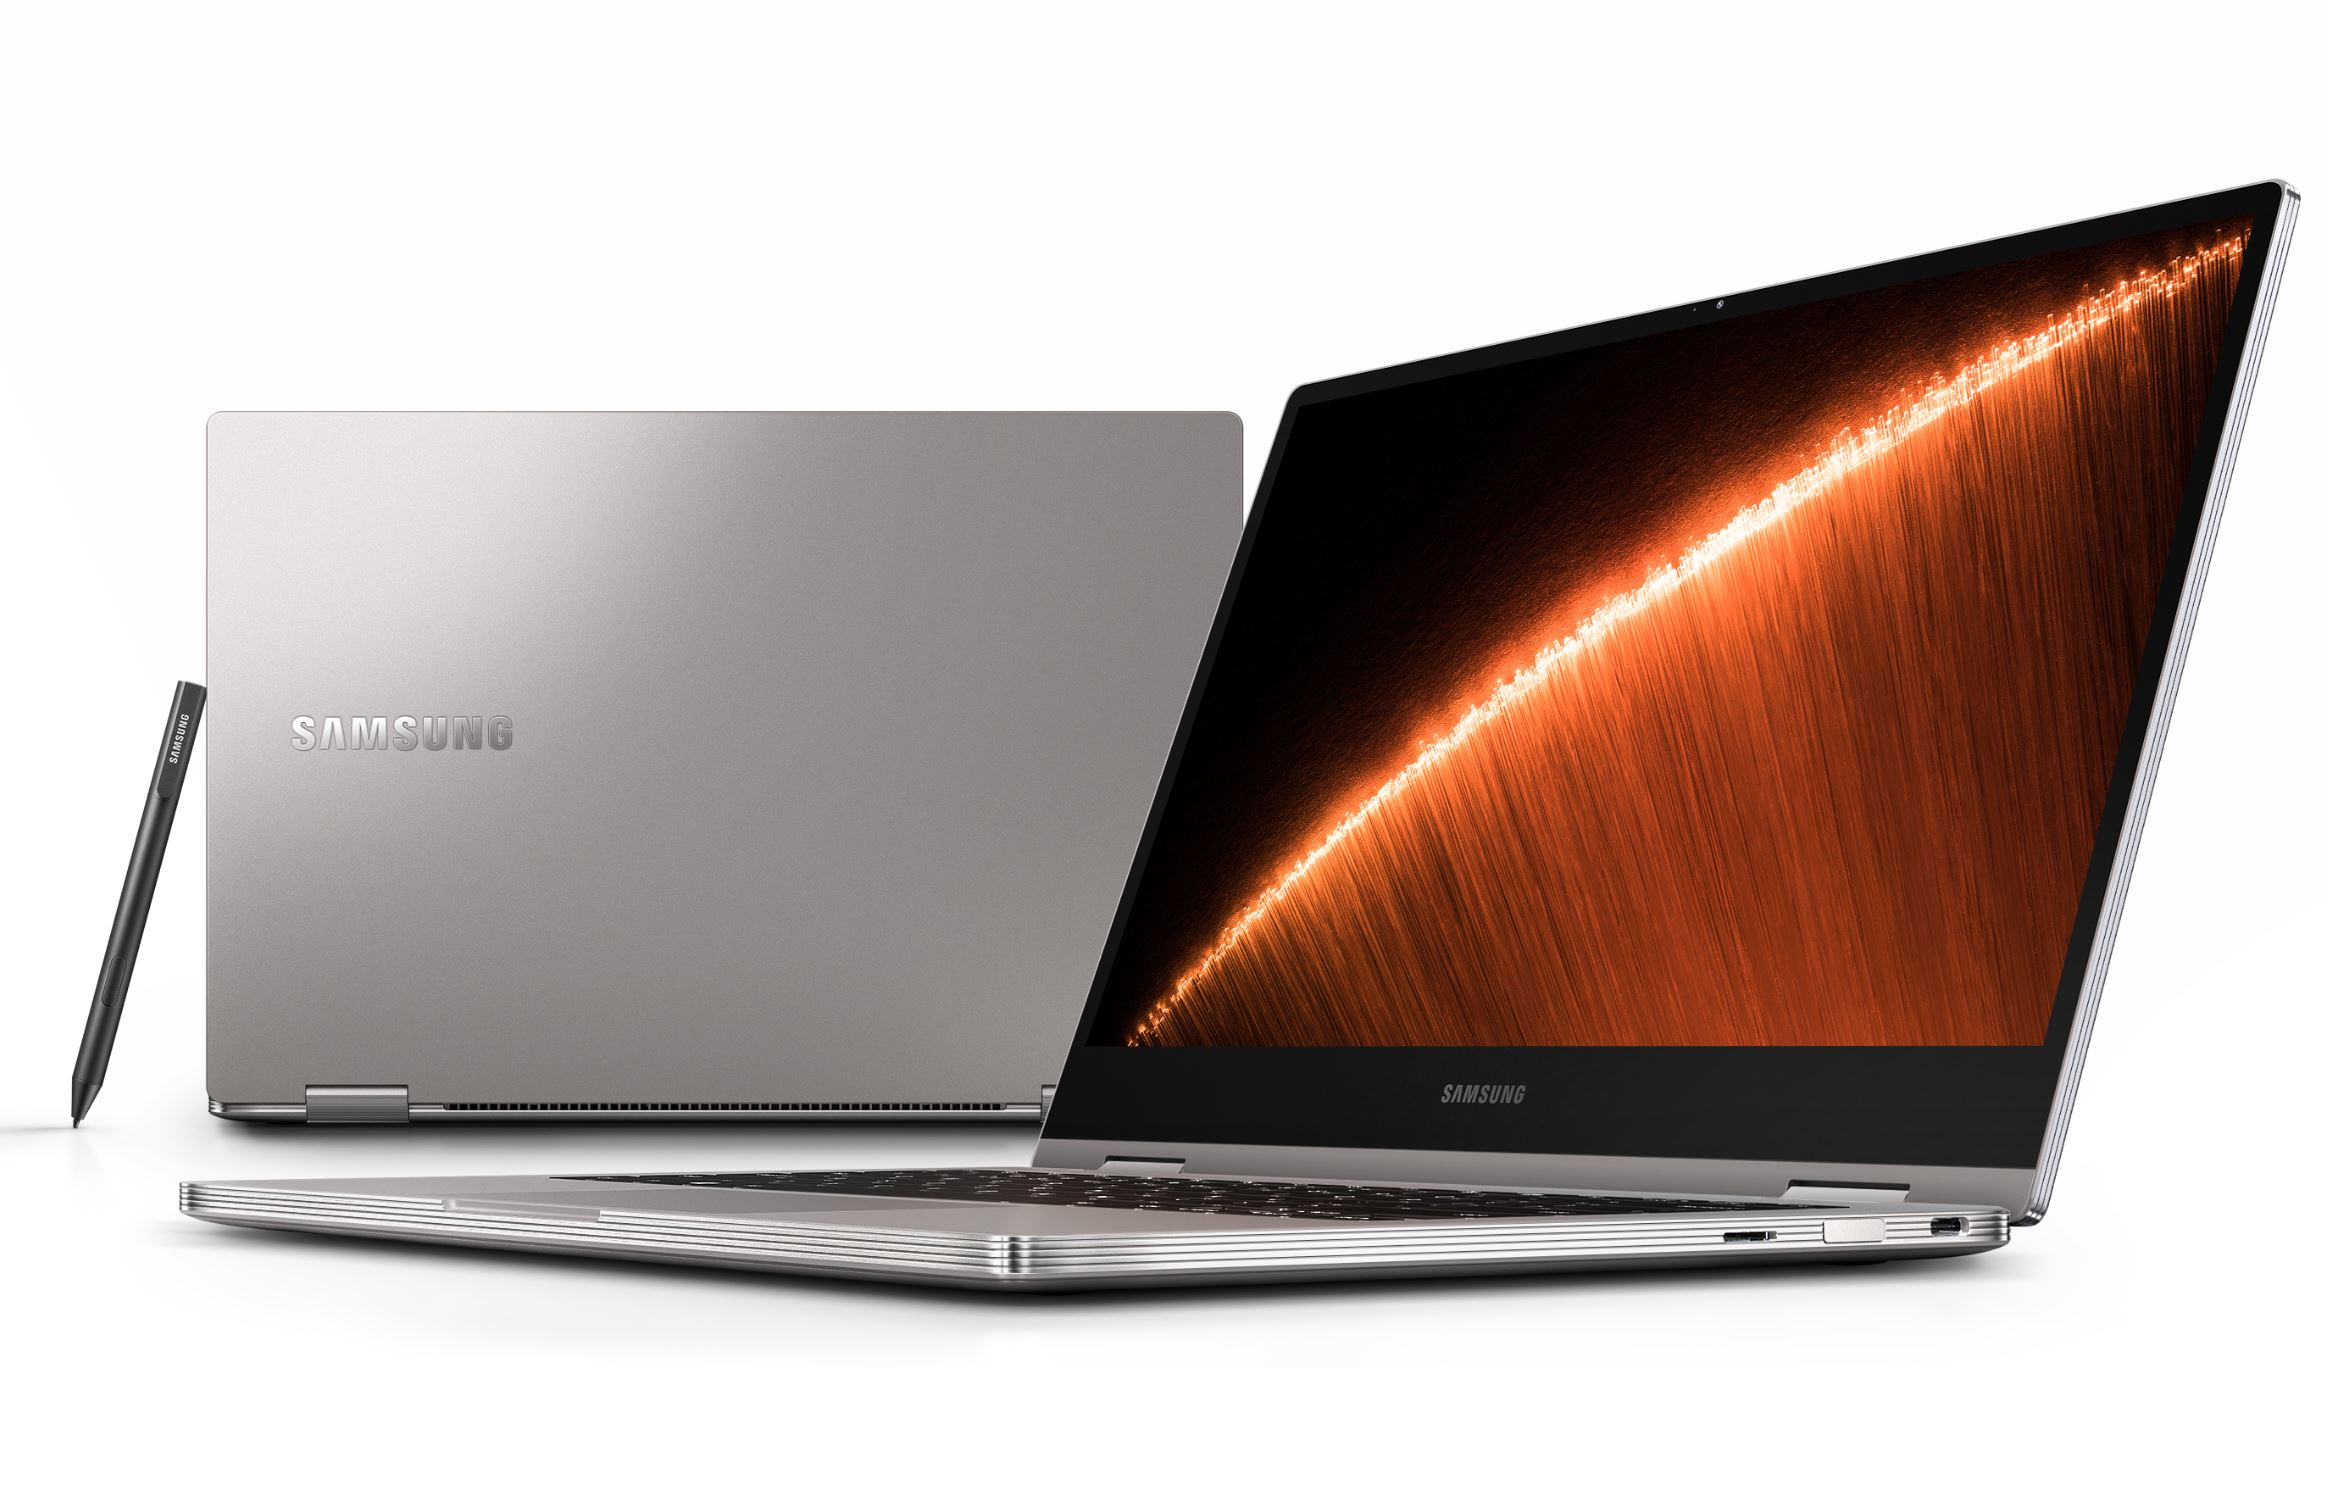 You can buy the new Samsung Notebook 9 Pen and Notebook 9 Pro in the US from March 17 1